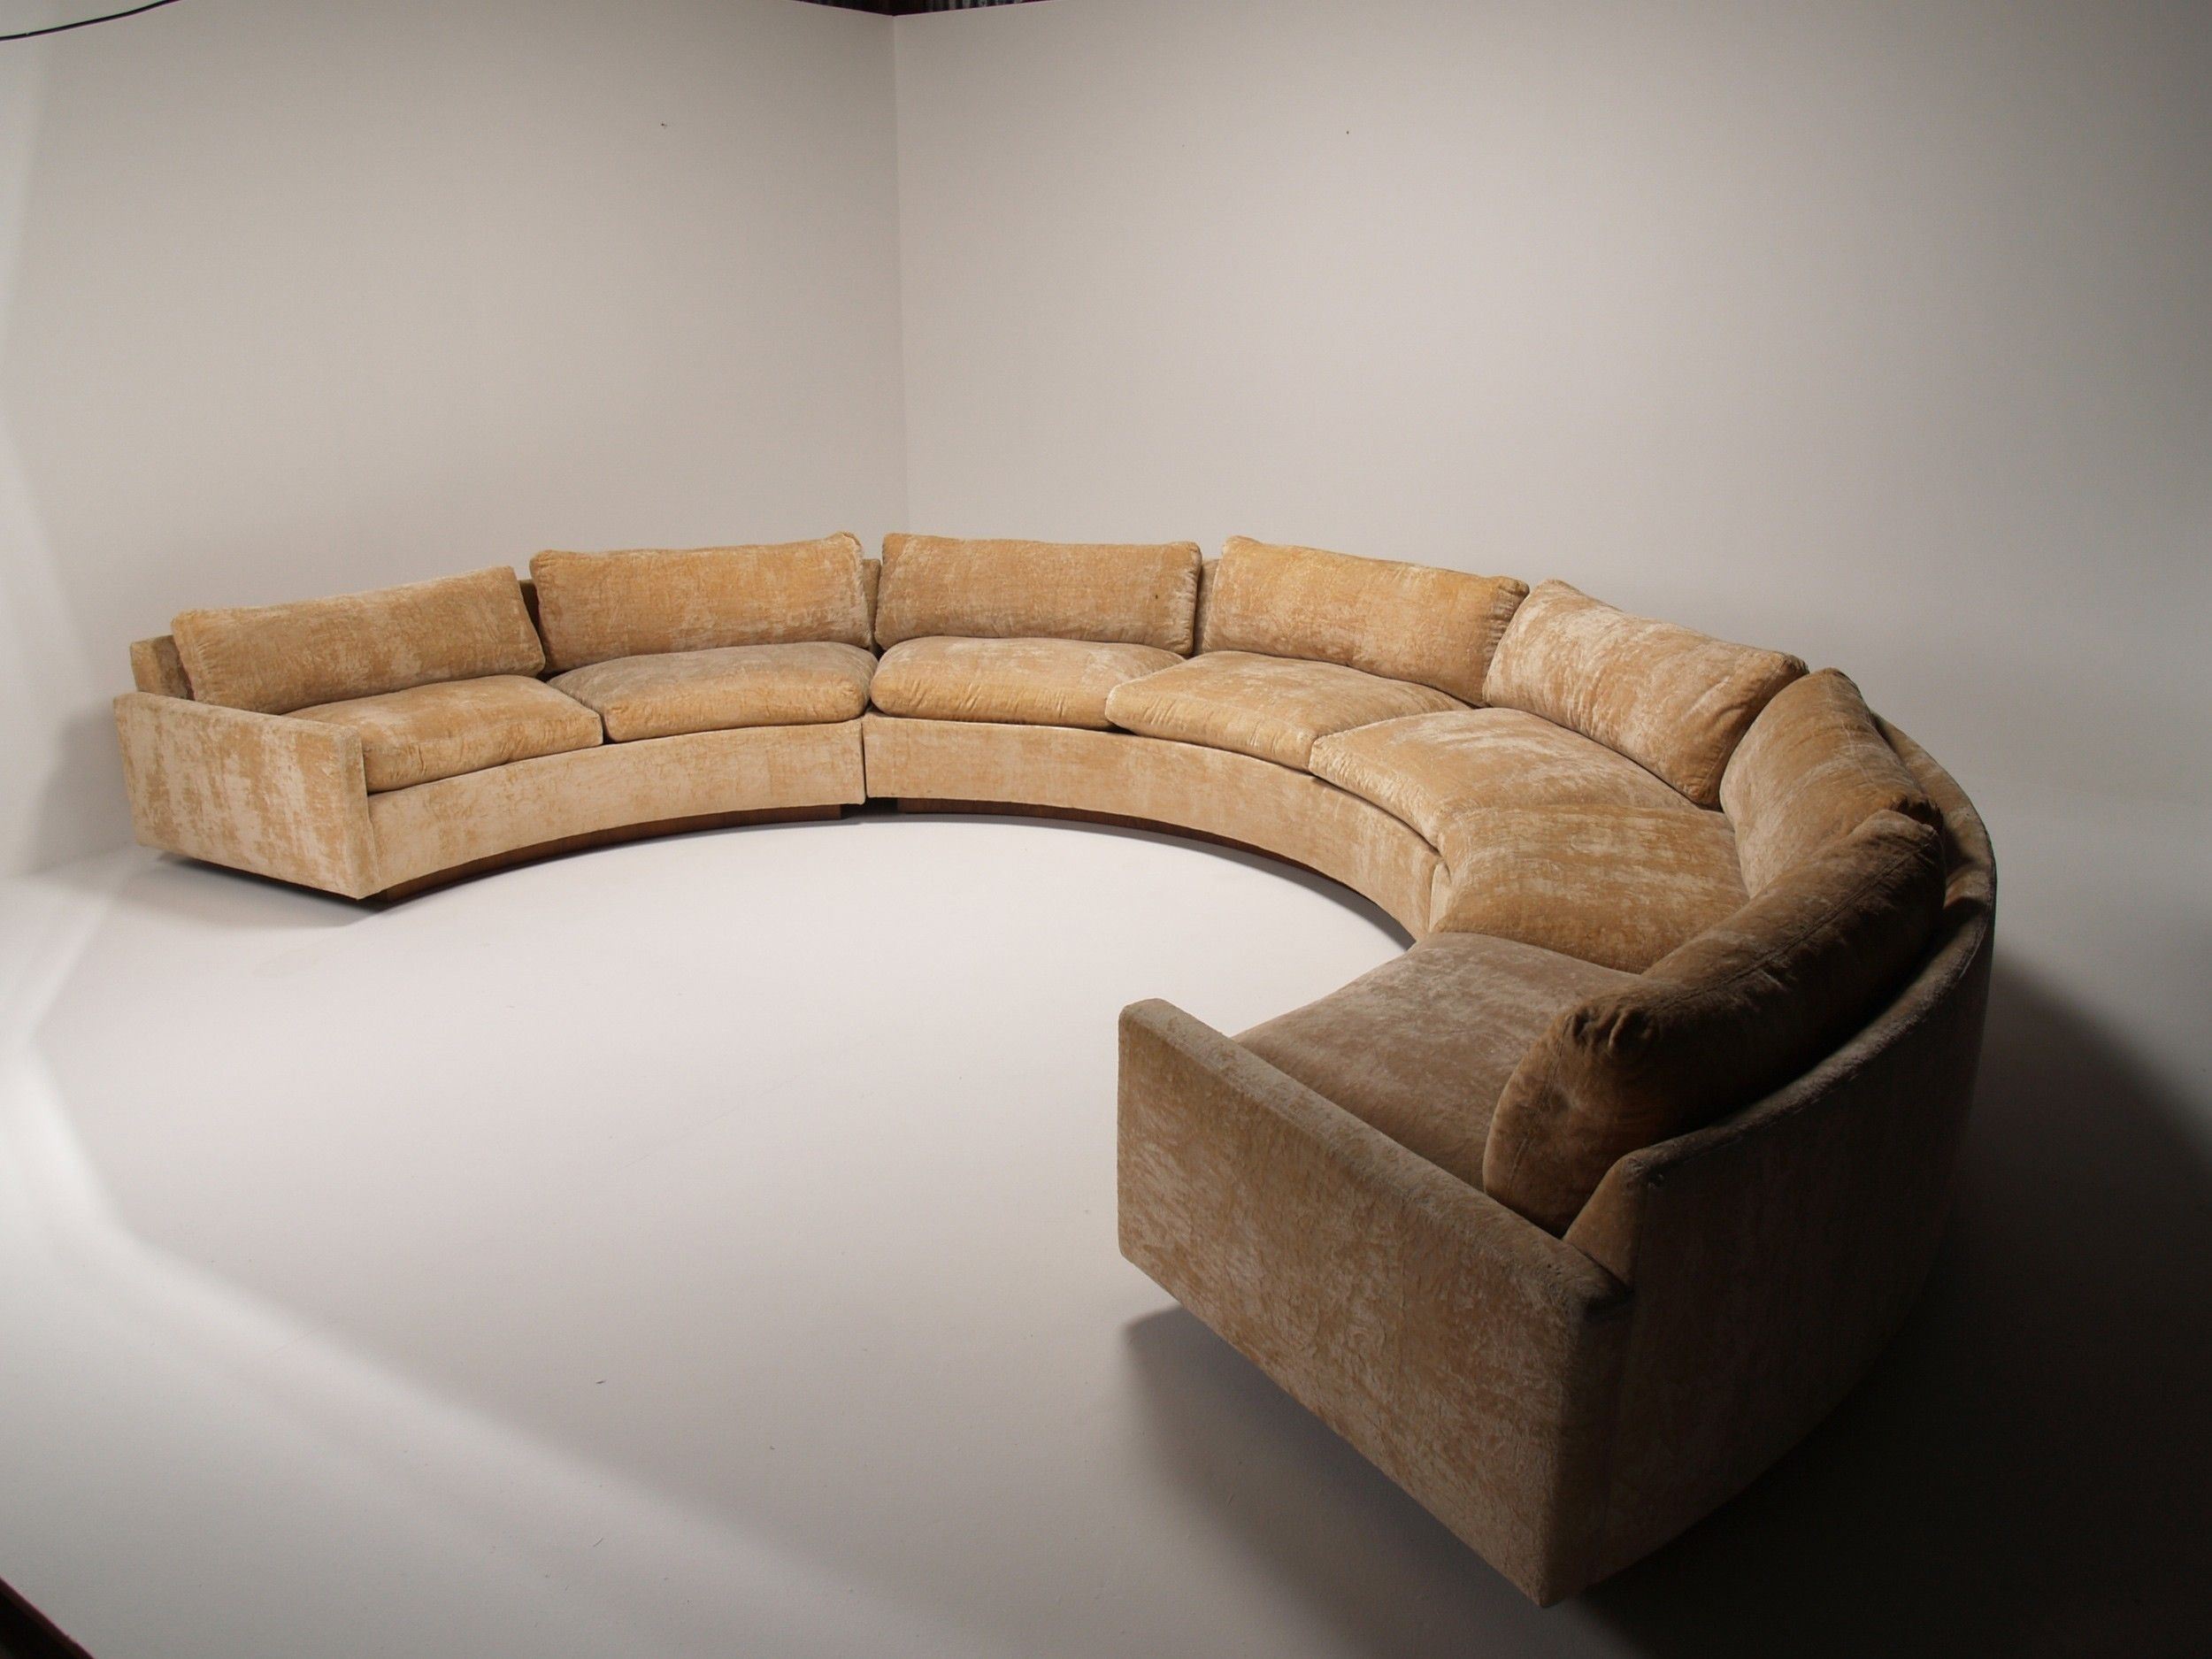 Circular Loveseat Sofa | Curved Sectional | Small Curved Couch Within Round Sectional Sofas (View 6 of 10)